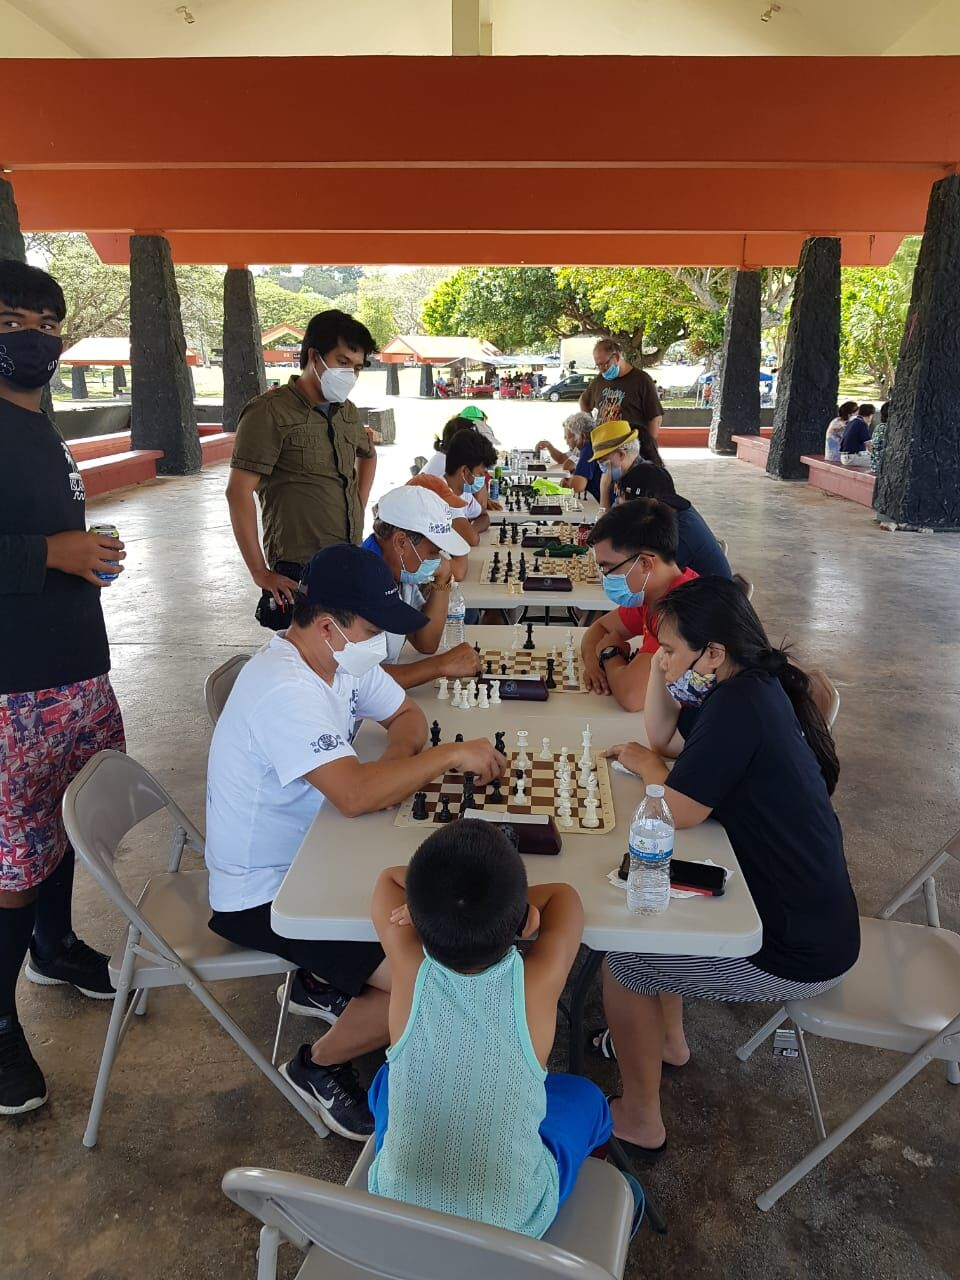 Chess federation to host tournament Oct. 3 at Ypao Beach